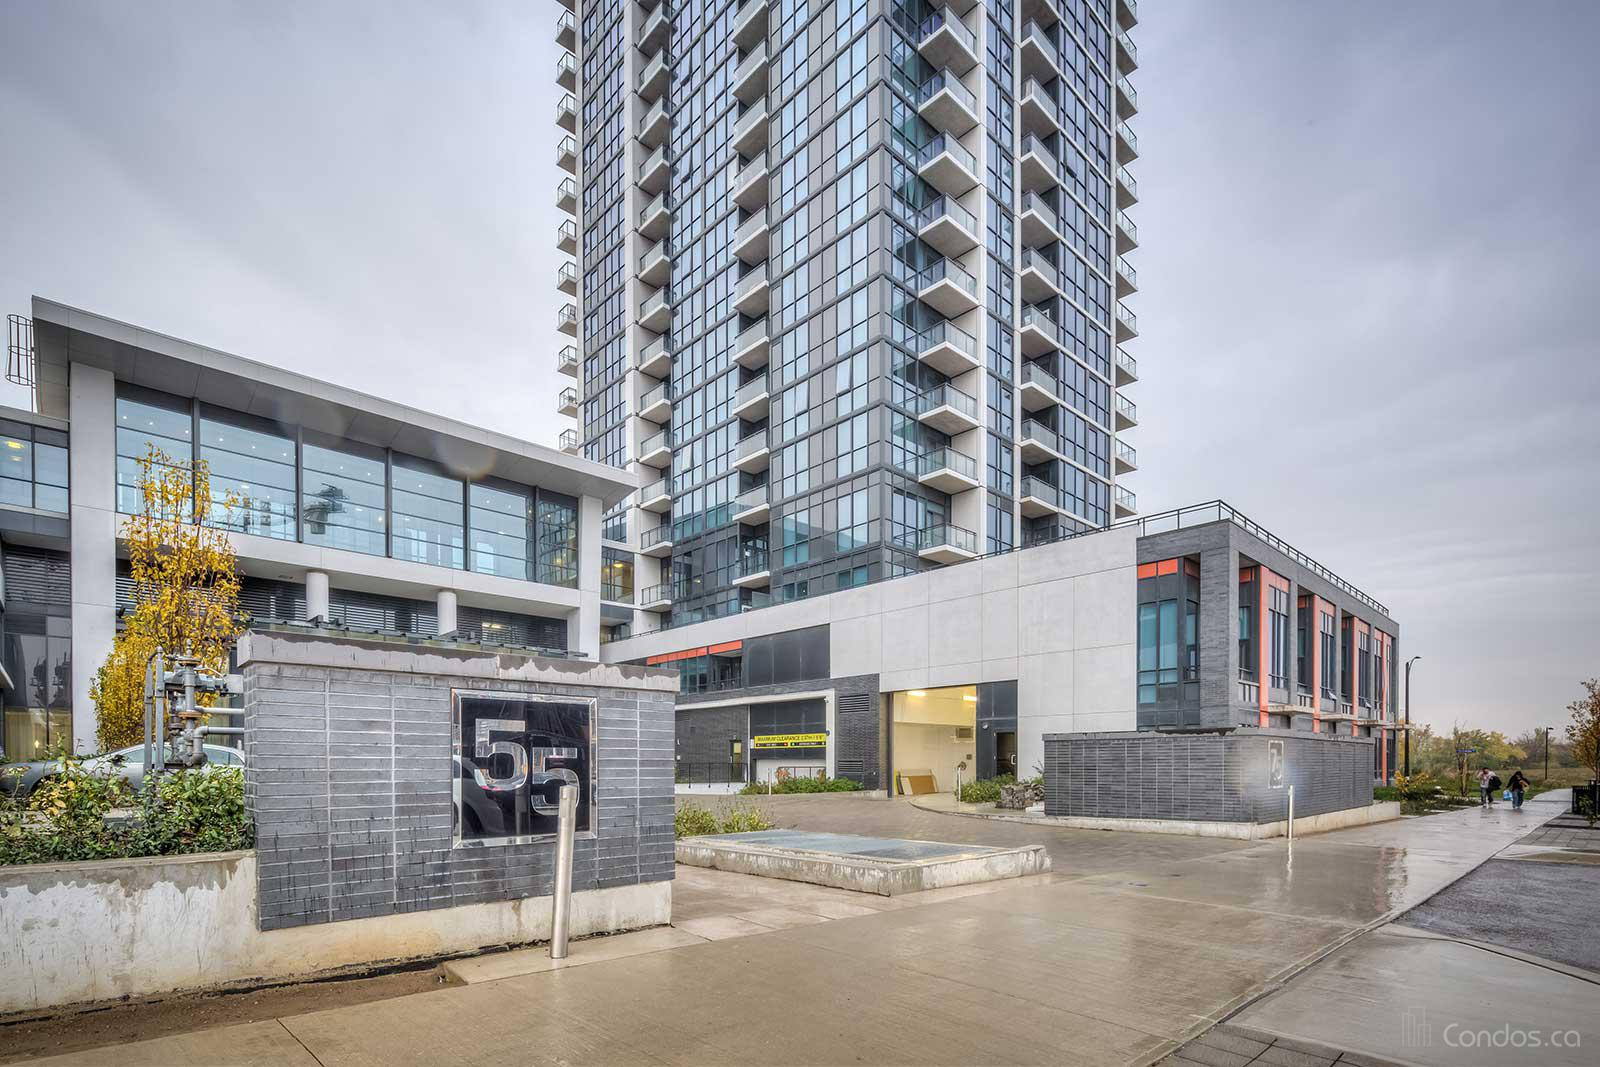 Crystal at 55 Eglinton Ave W, Mississauga 1